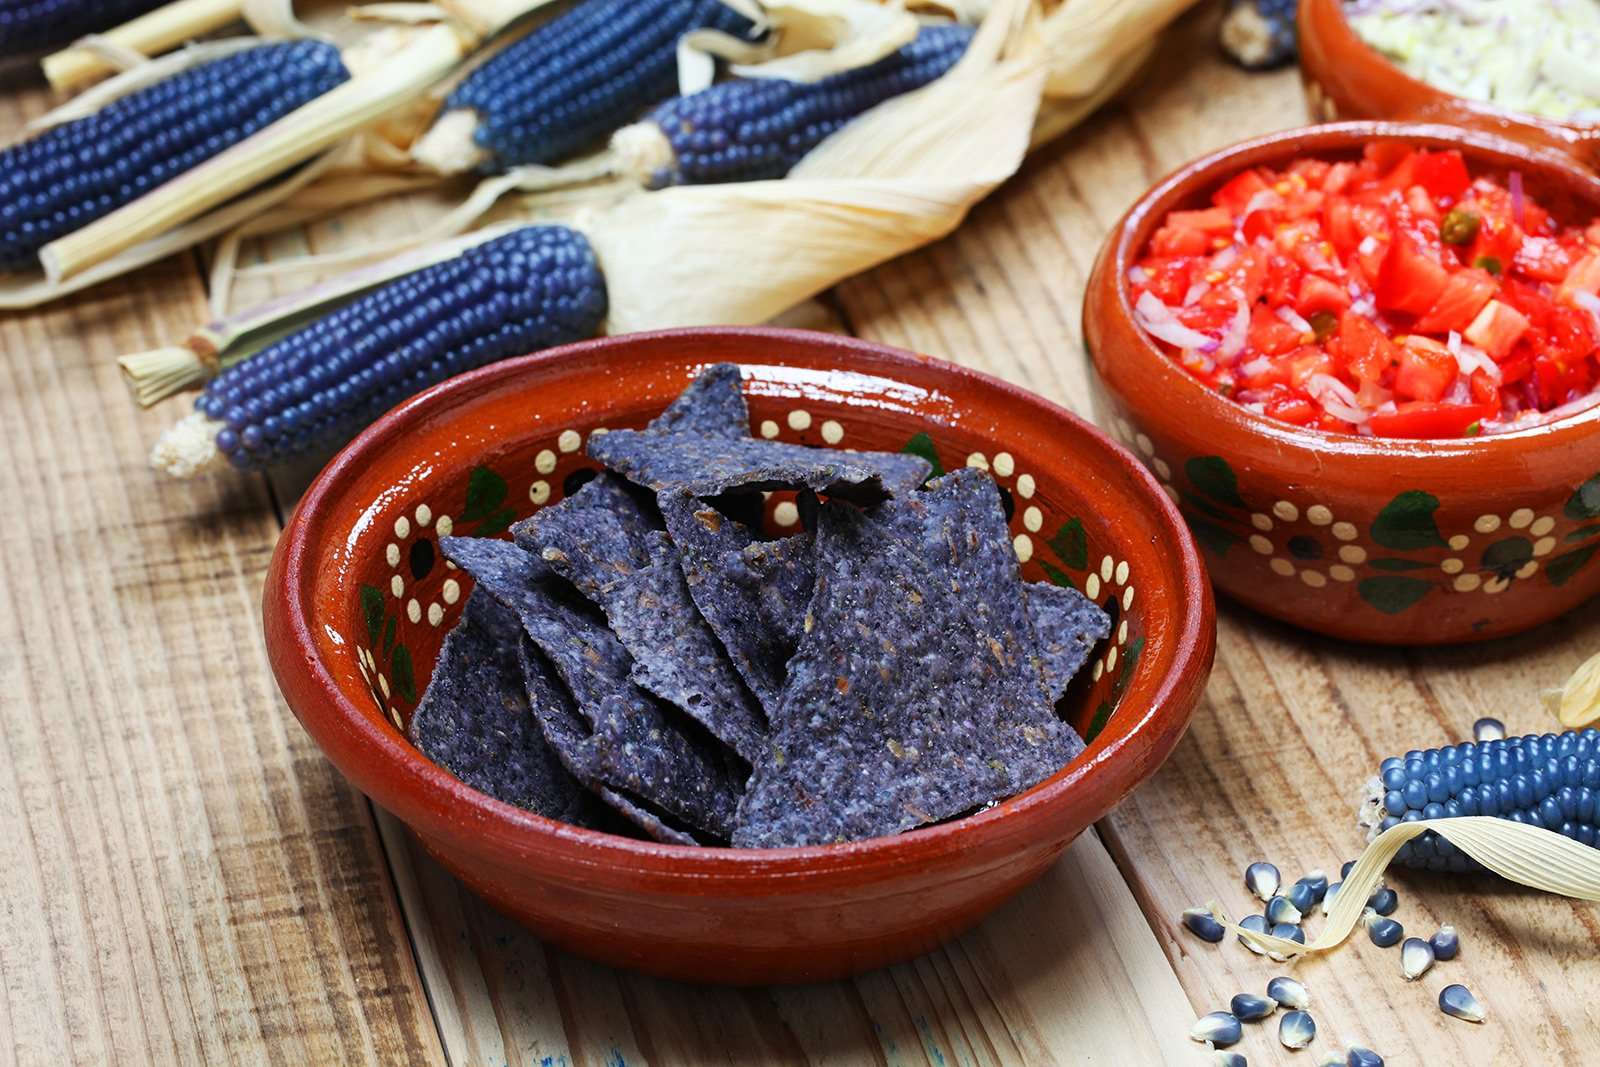 How to taste blue corn tortilla in Mexico City